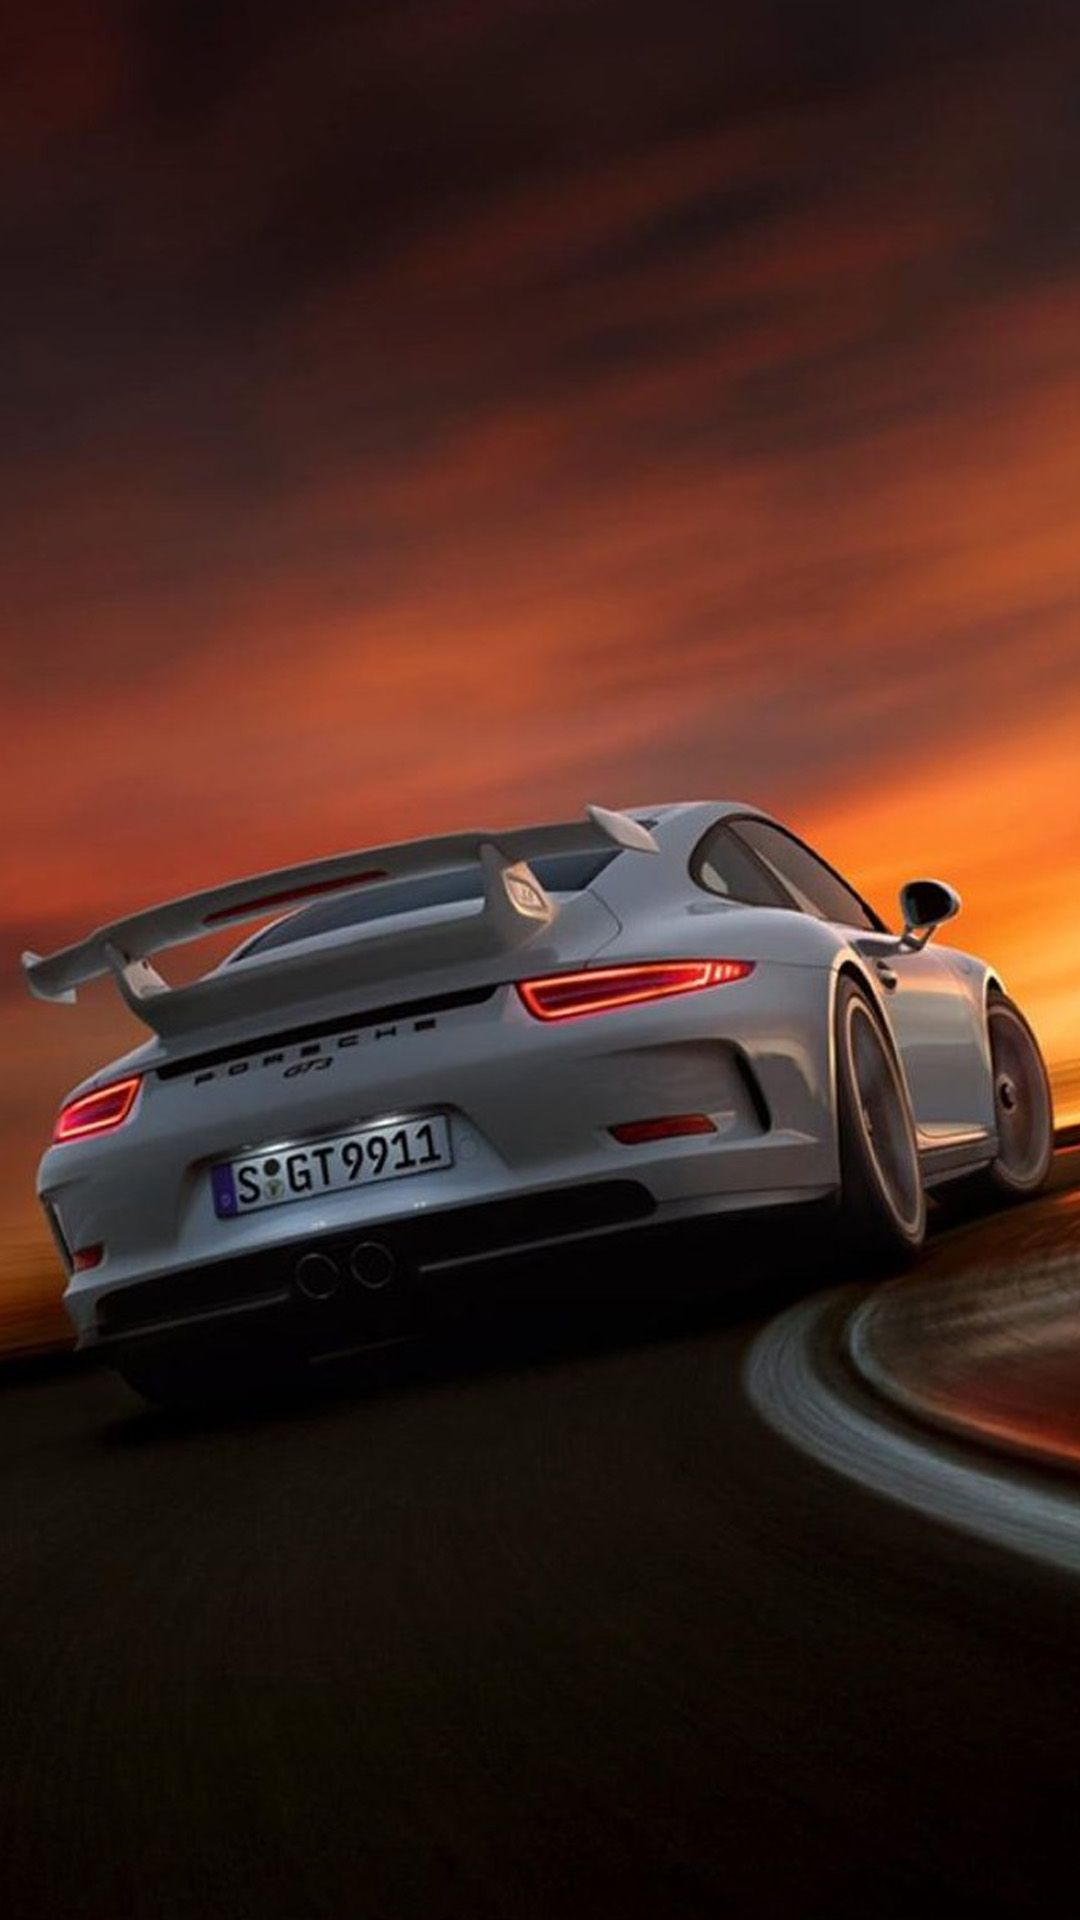 Wallpaper Collection 37 Best Free Hd Car Wallpaper Iphone Background To Download Pc Mobile Tablette Car Wallpaper In 2020 Porsche 911 Gt3 Car Wallpapers Porsche